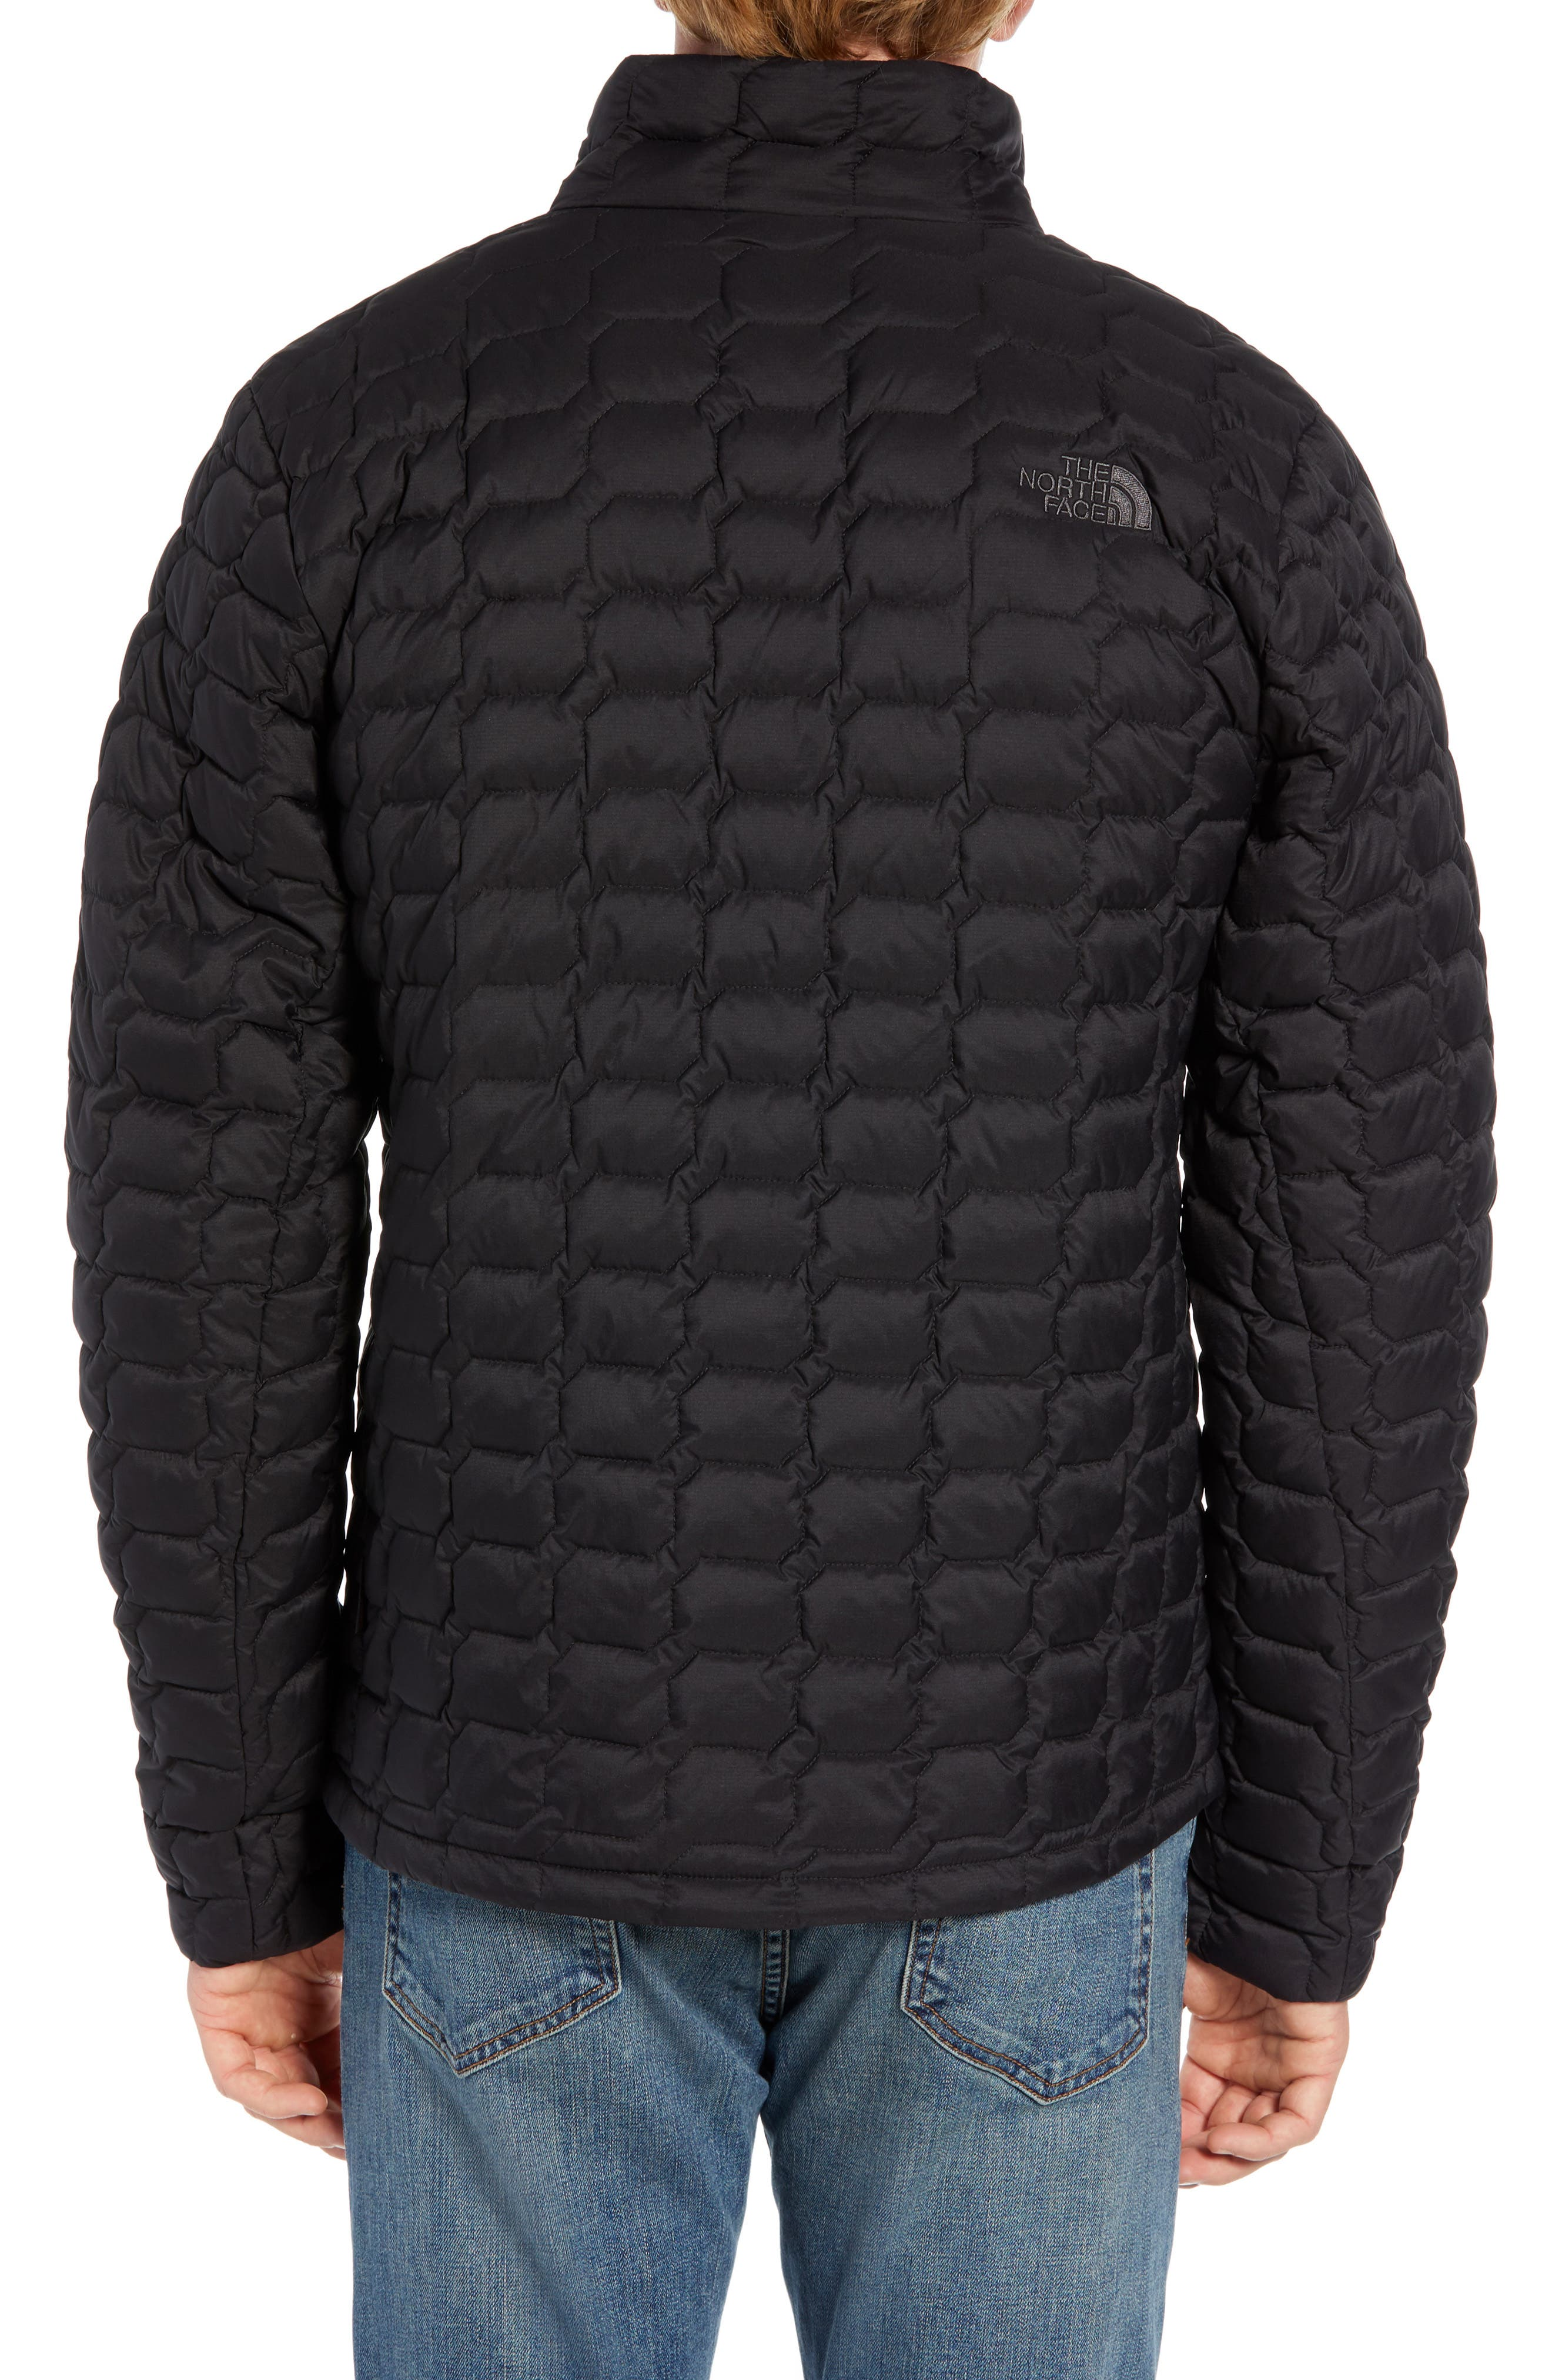 THE NORTH FACE, ThermoBall<sup>™</sup> Jacket, Alternate thumbnail 2, color, 001